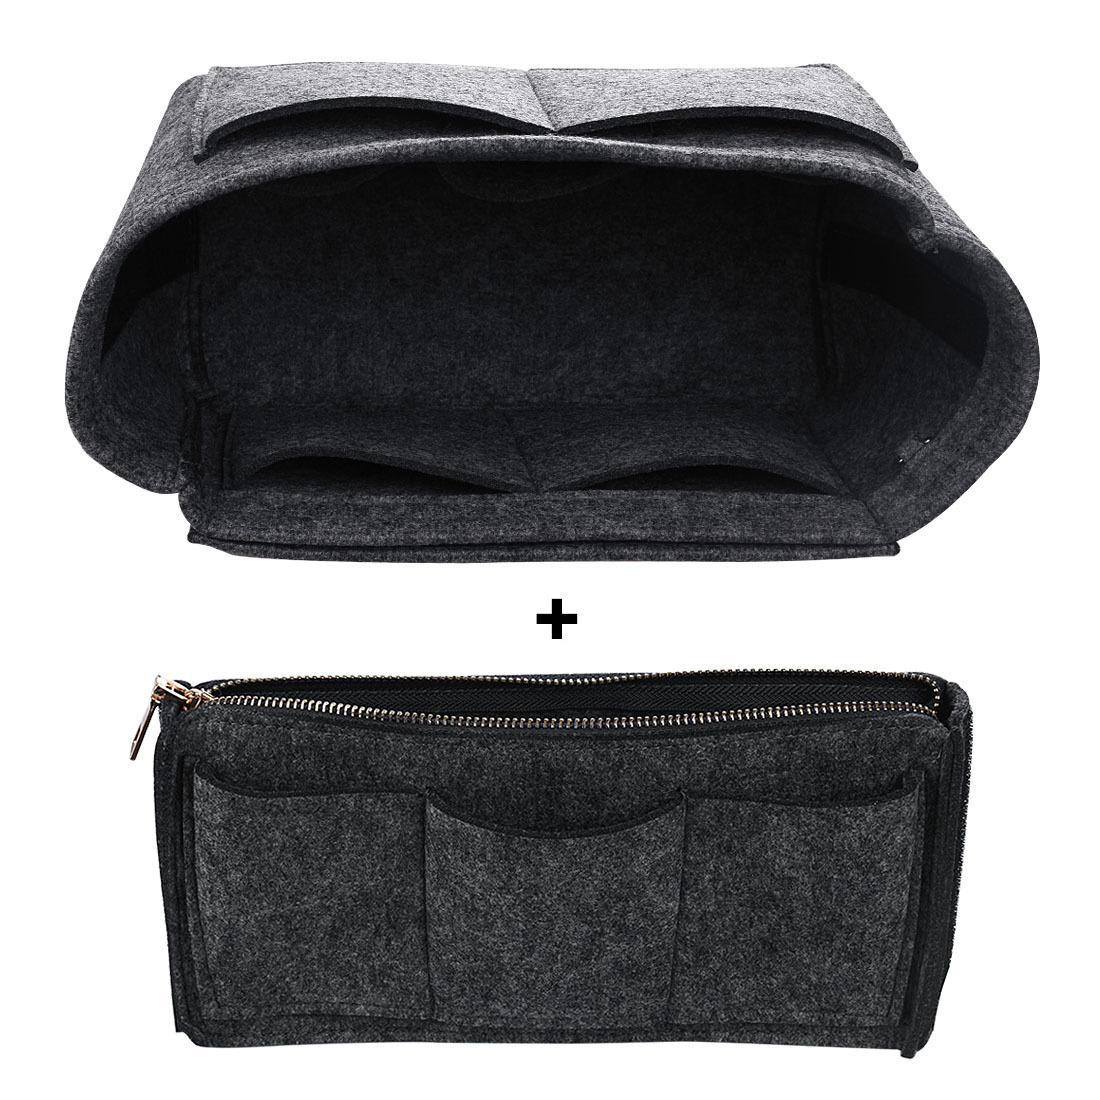 Girls Toiletry Handbags Ladies Travel Organizer Women Felt Cloth Insert Bags Female Make Up Cases Multifunctional Cosmetic Bags C18111401